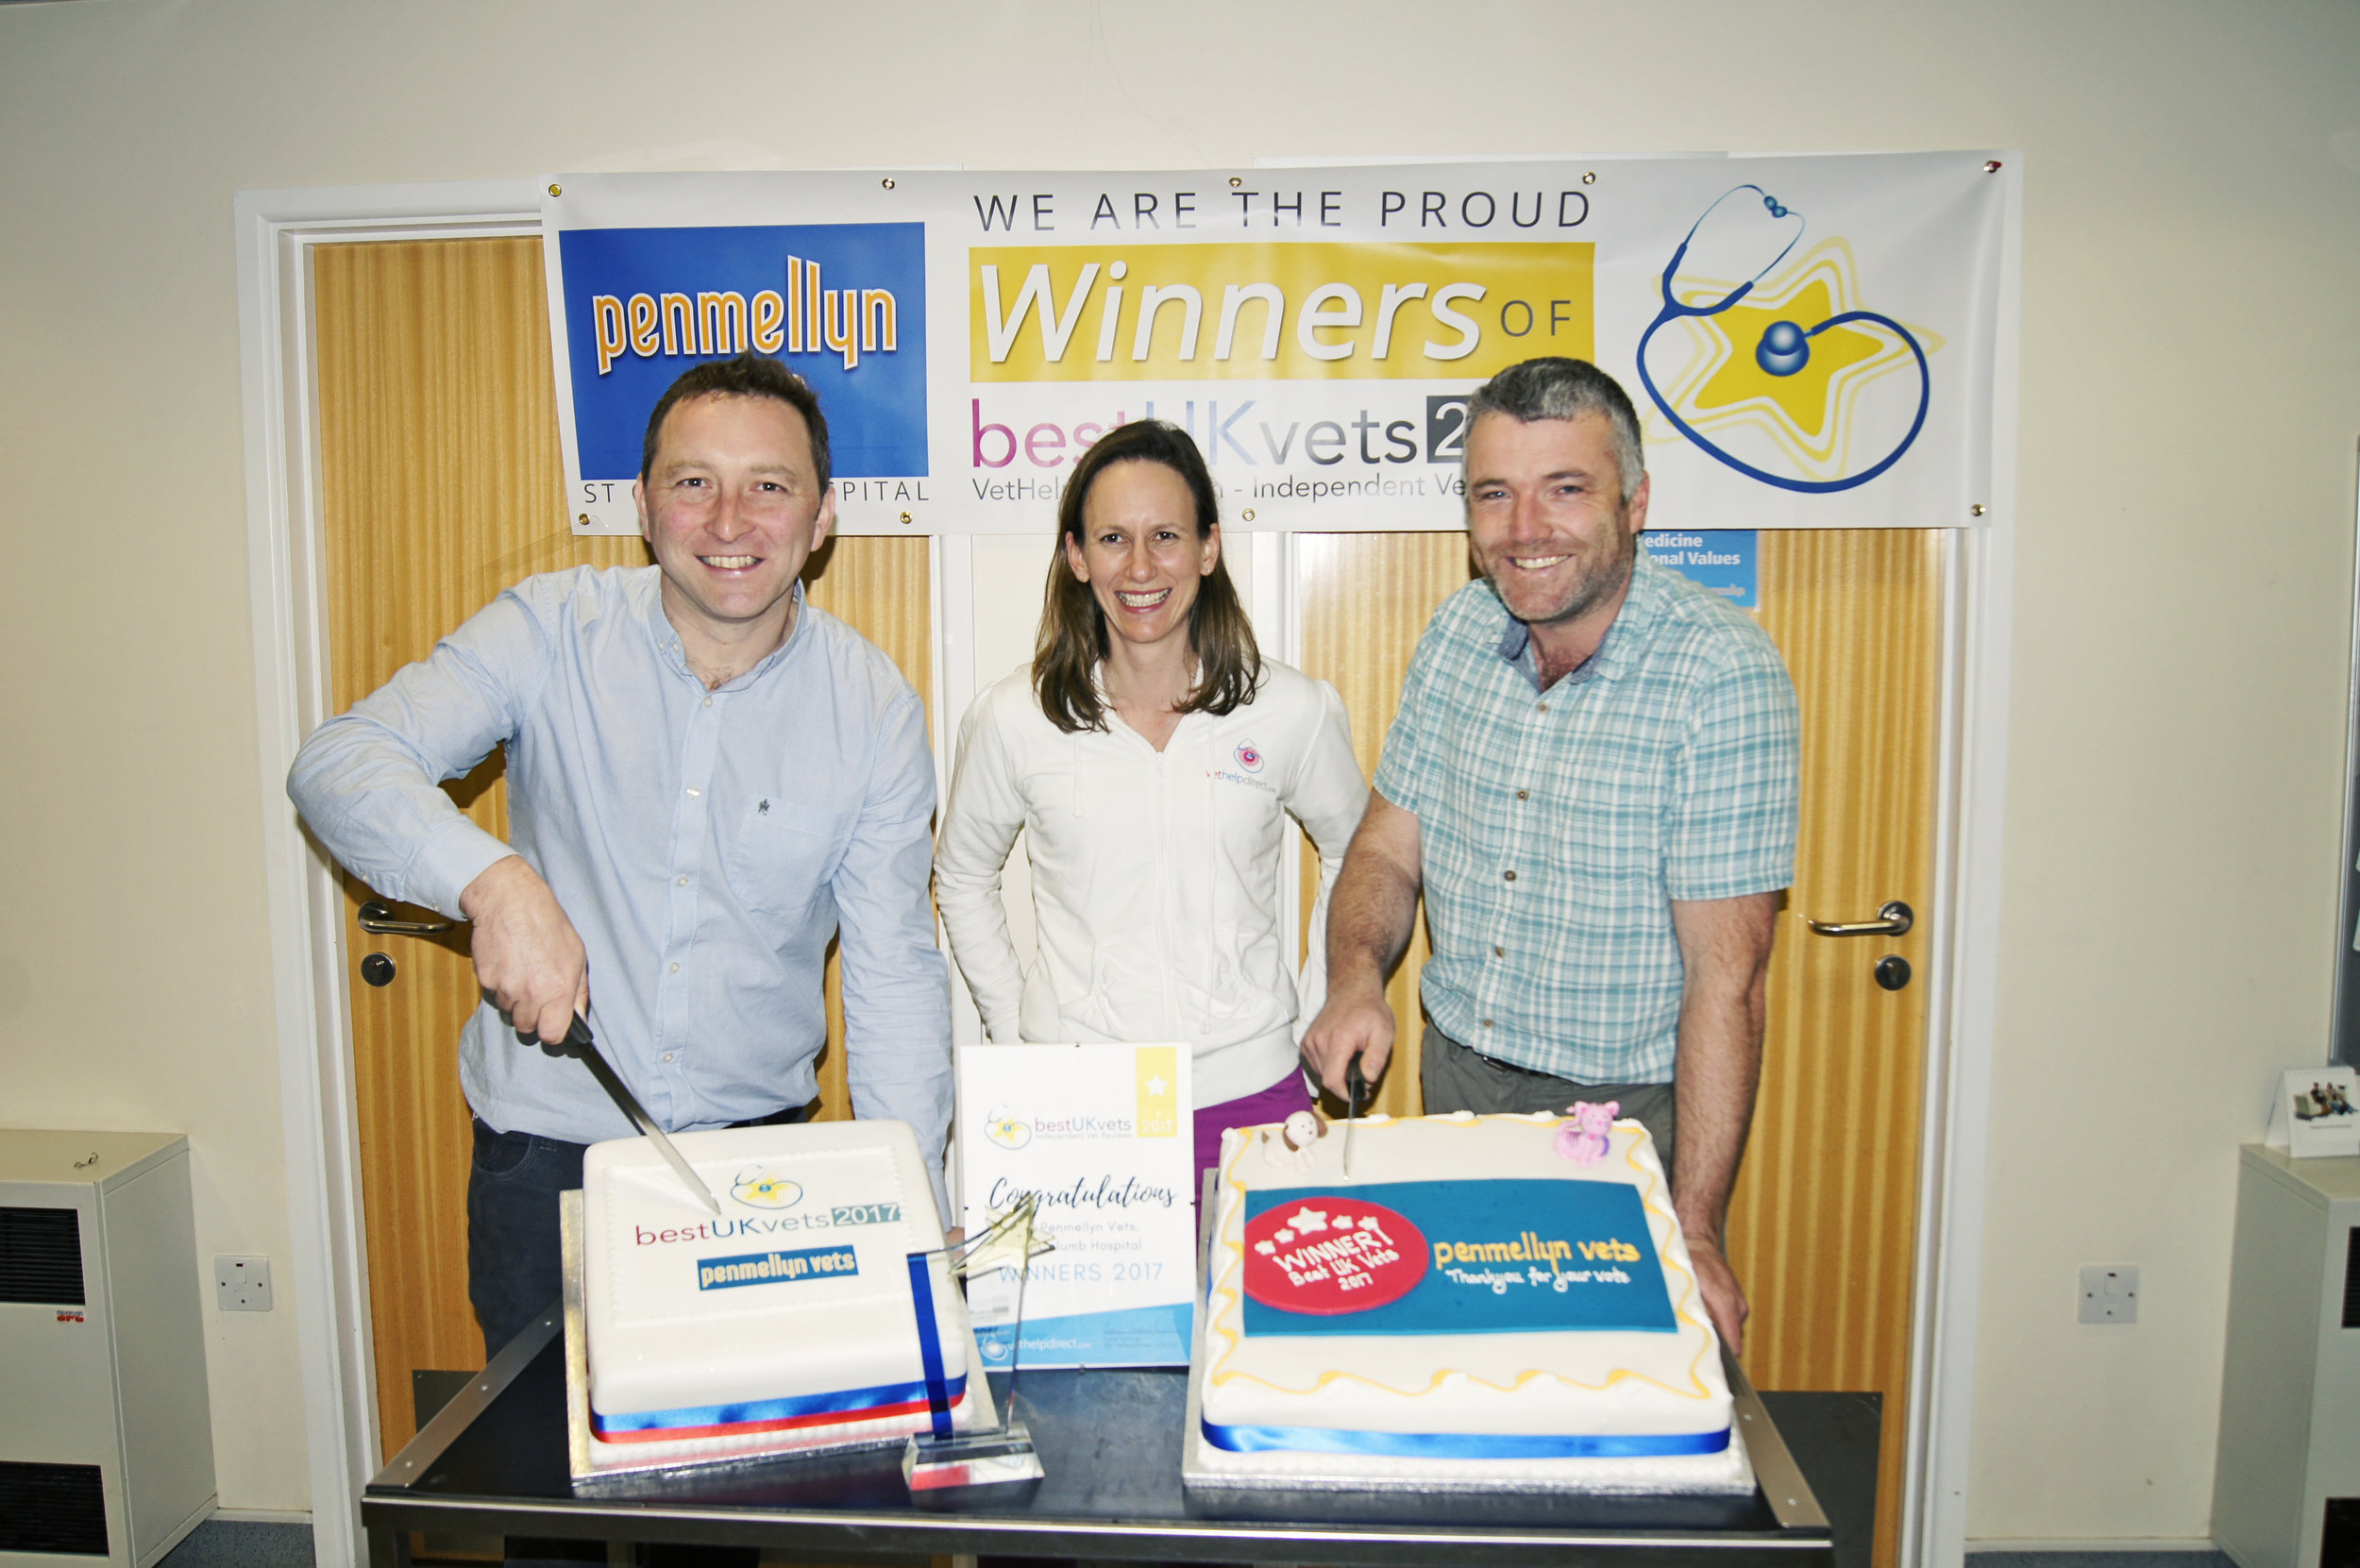 Penmellyn Directors Philip Harris (left) and Peter Murrish (right), receiving award from VetHelpDirect founder Susie Samuel